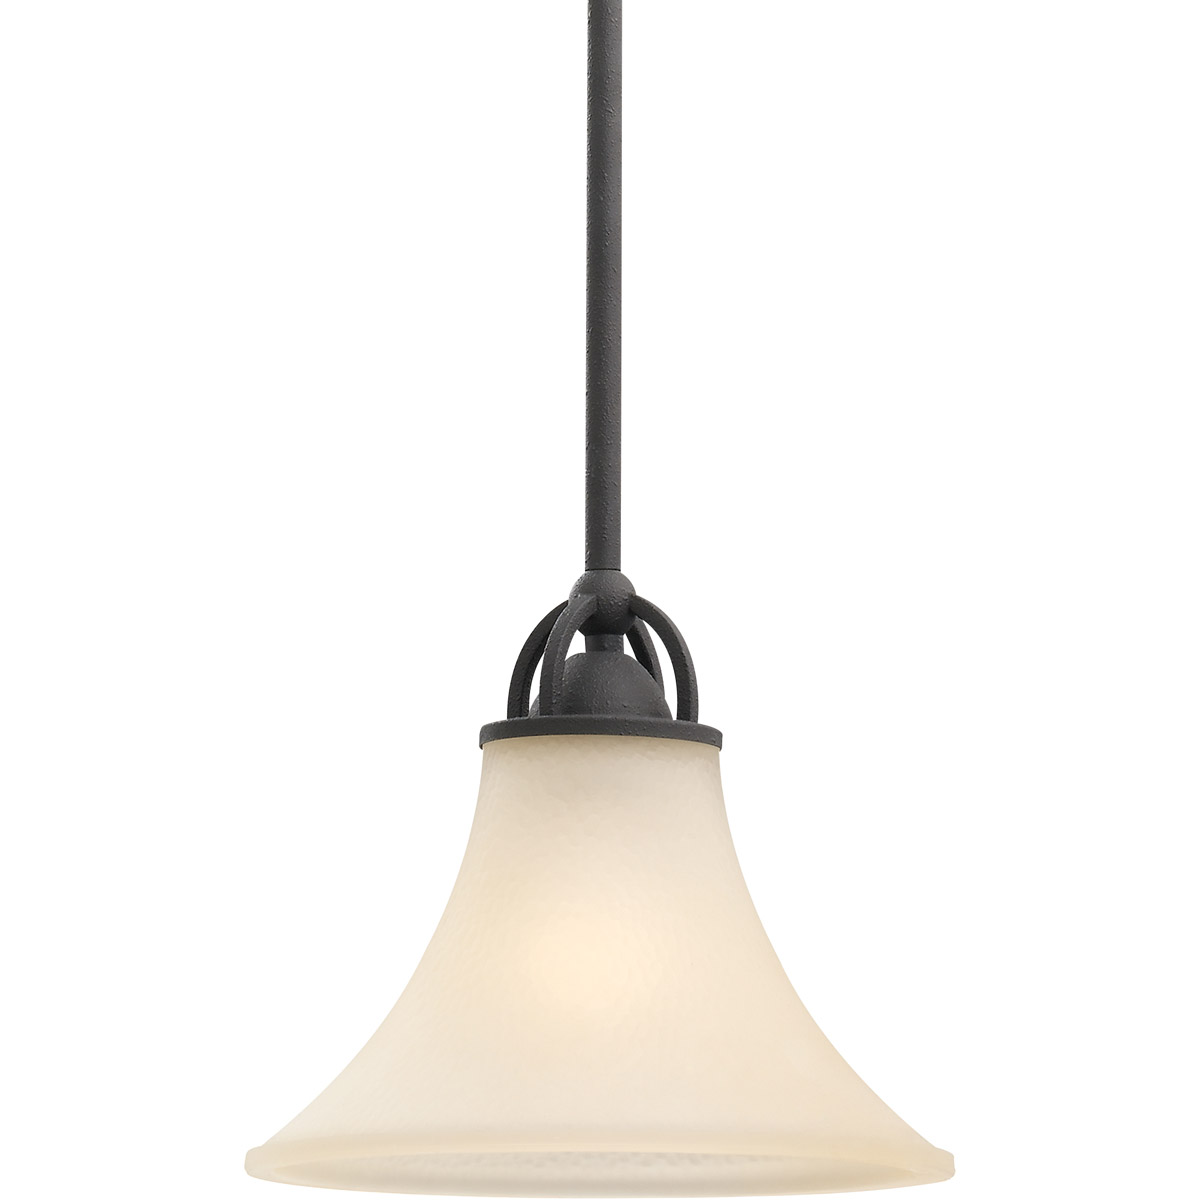 Sea Gull Lighting Somerton 1 Light Mini Pendant in Blacksmith 61375-839 photo